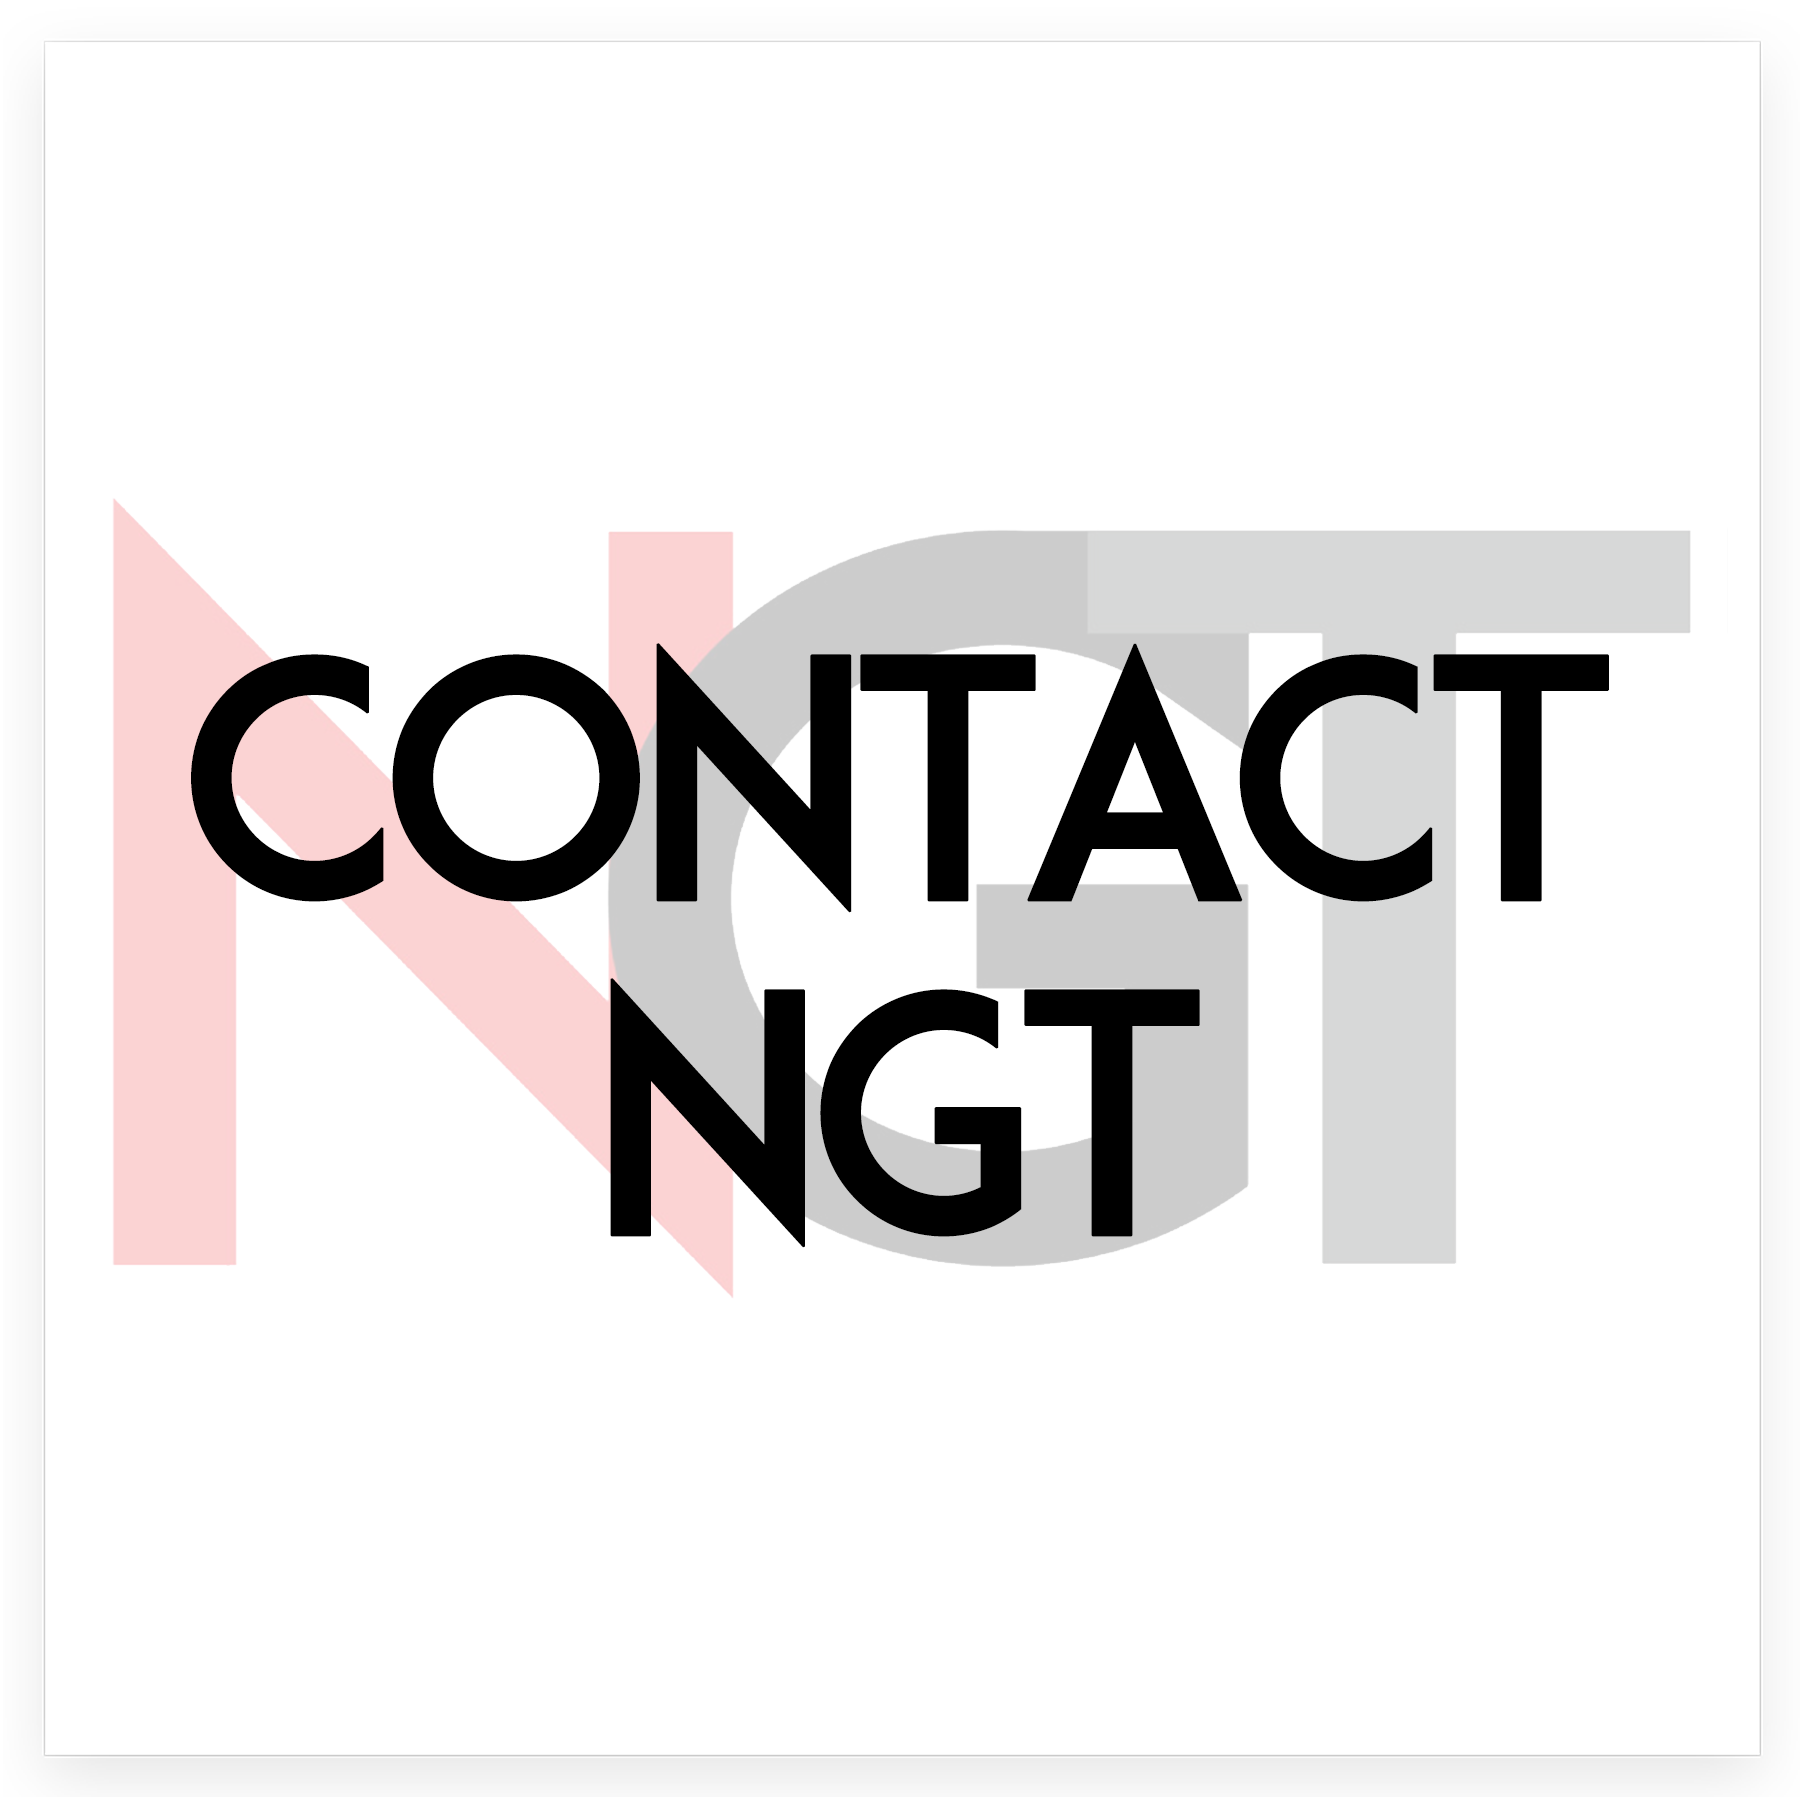 Contact, New Generation Theatre, Rockland County, Youth Theatre Company